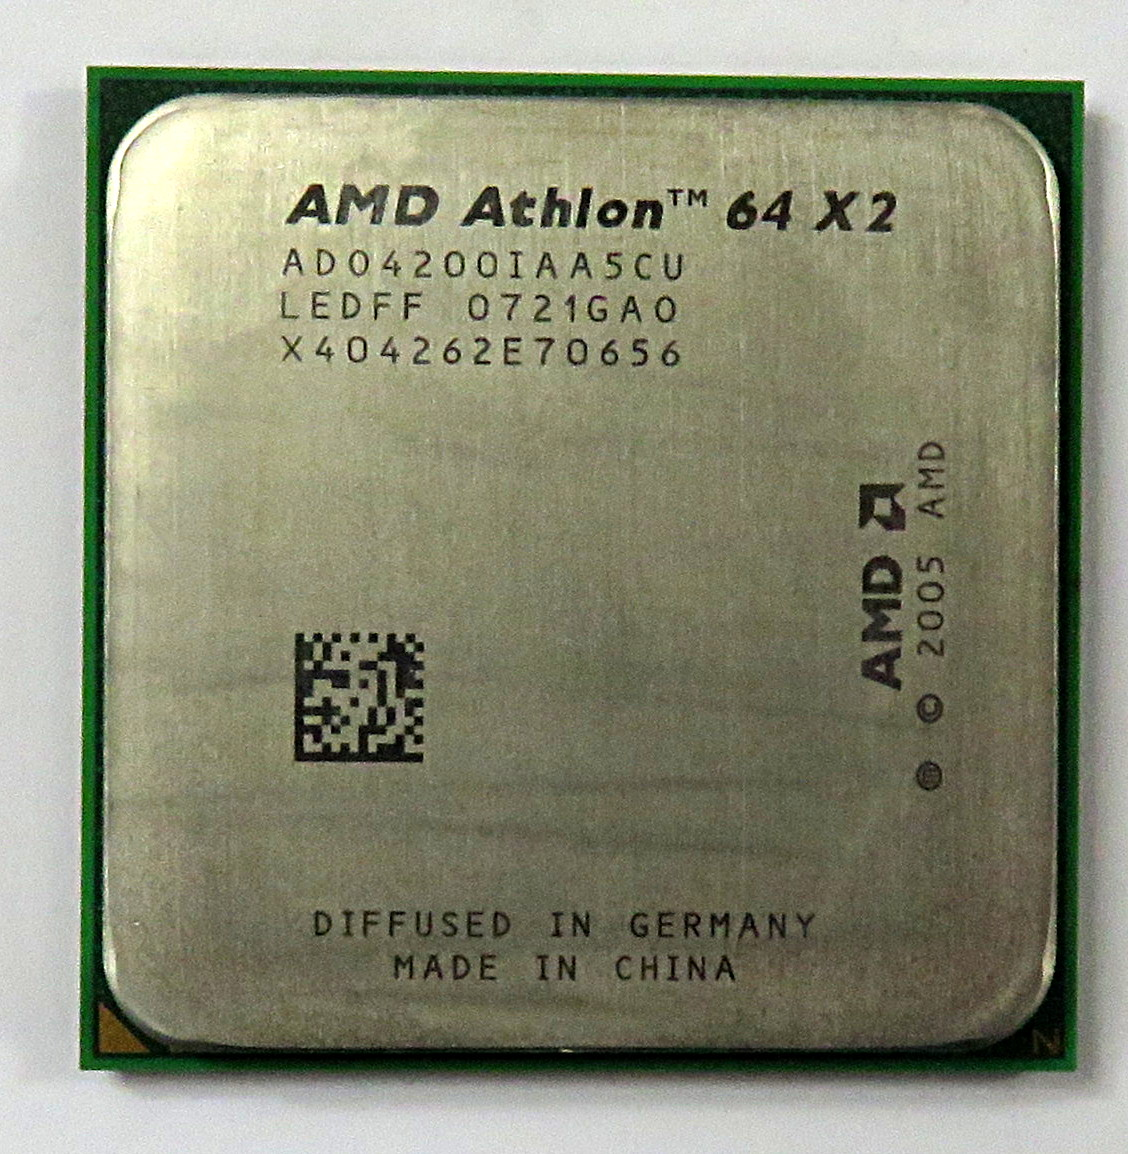 AMD ADO4200IAA5CU Athlon 64 X2 4200+ 2.2GHz Socket AM2 Processor